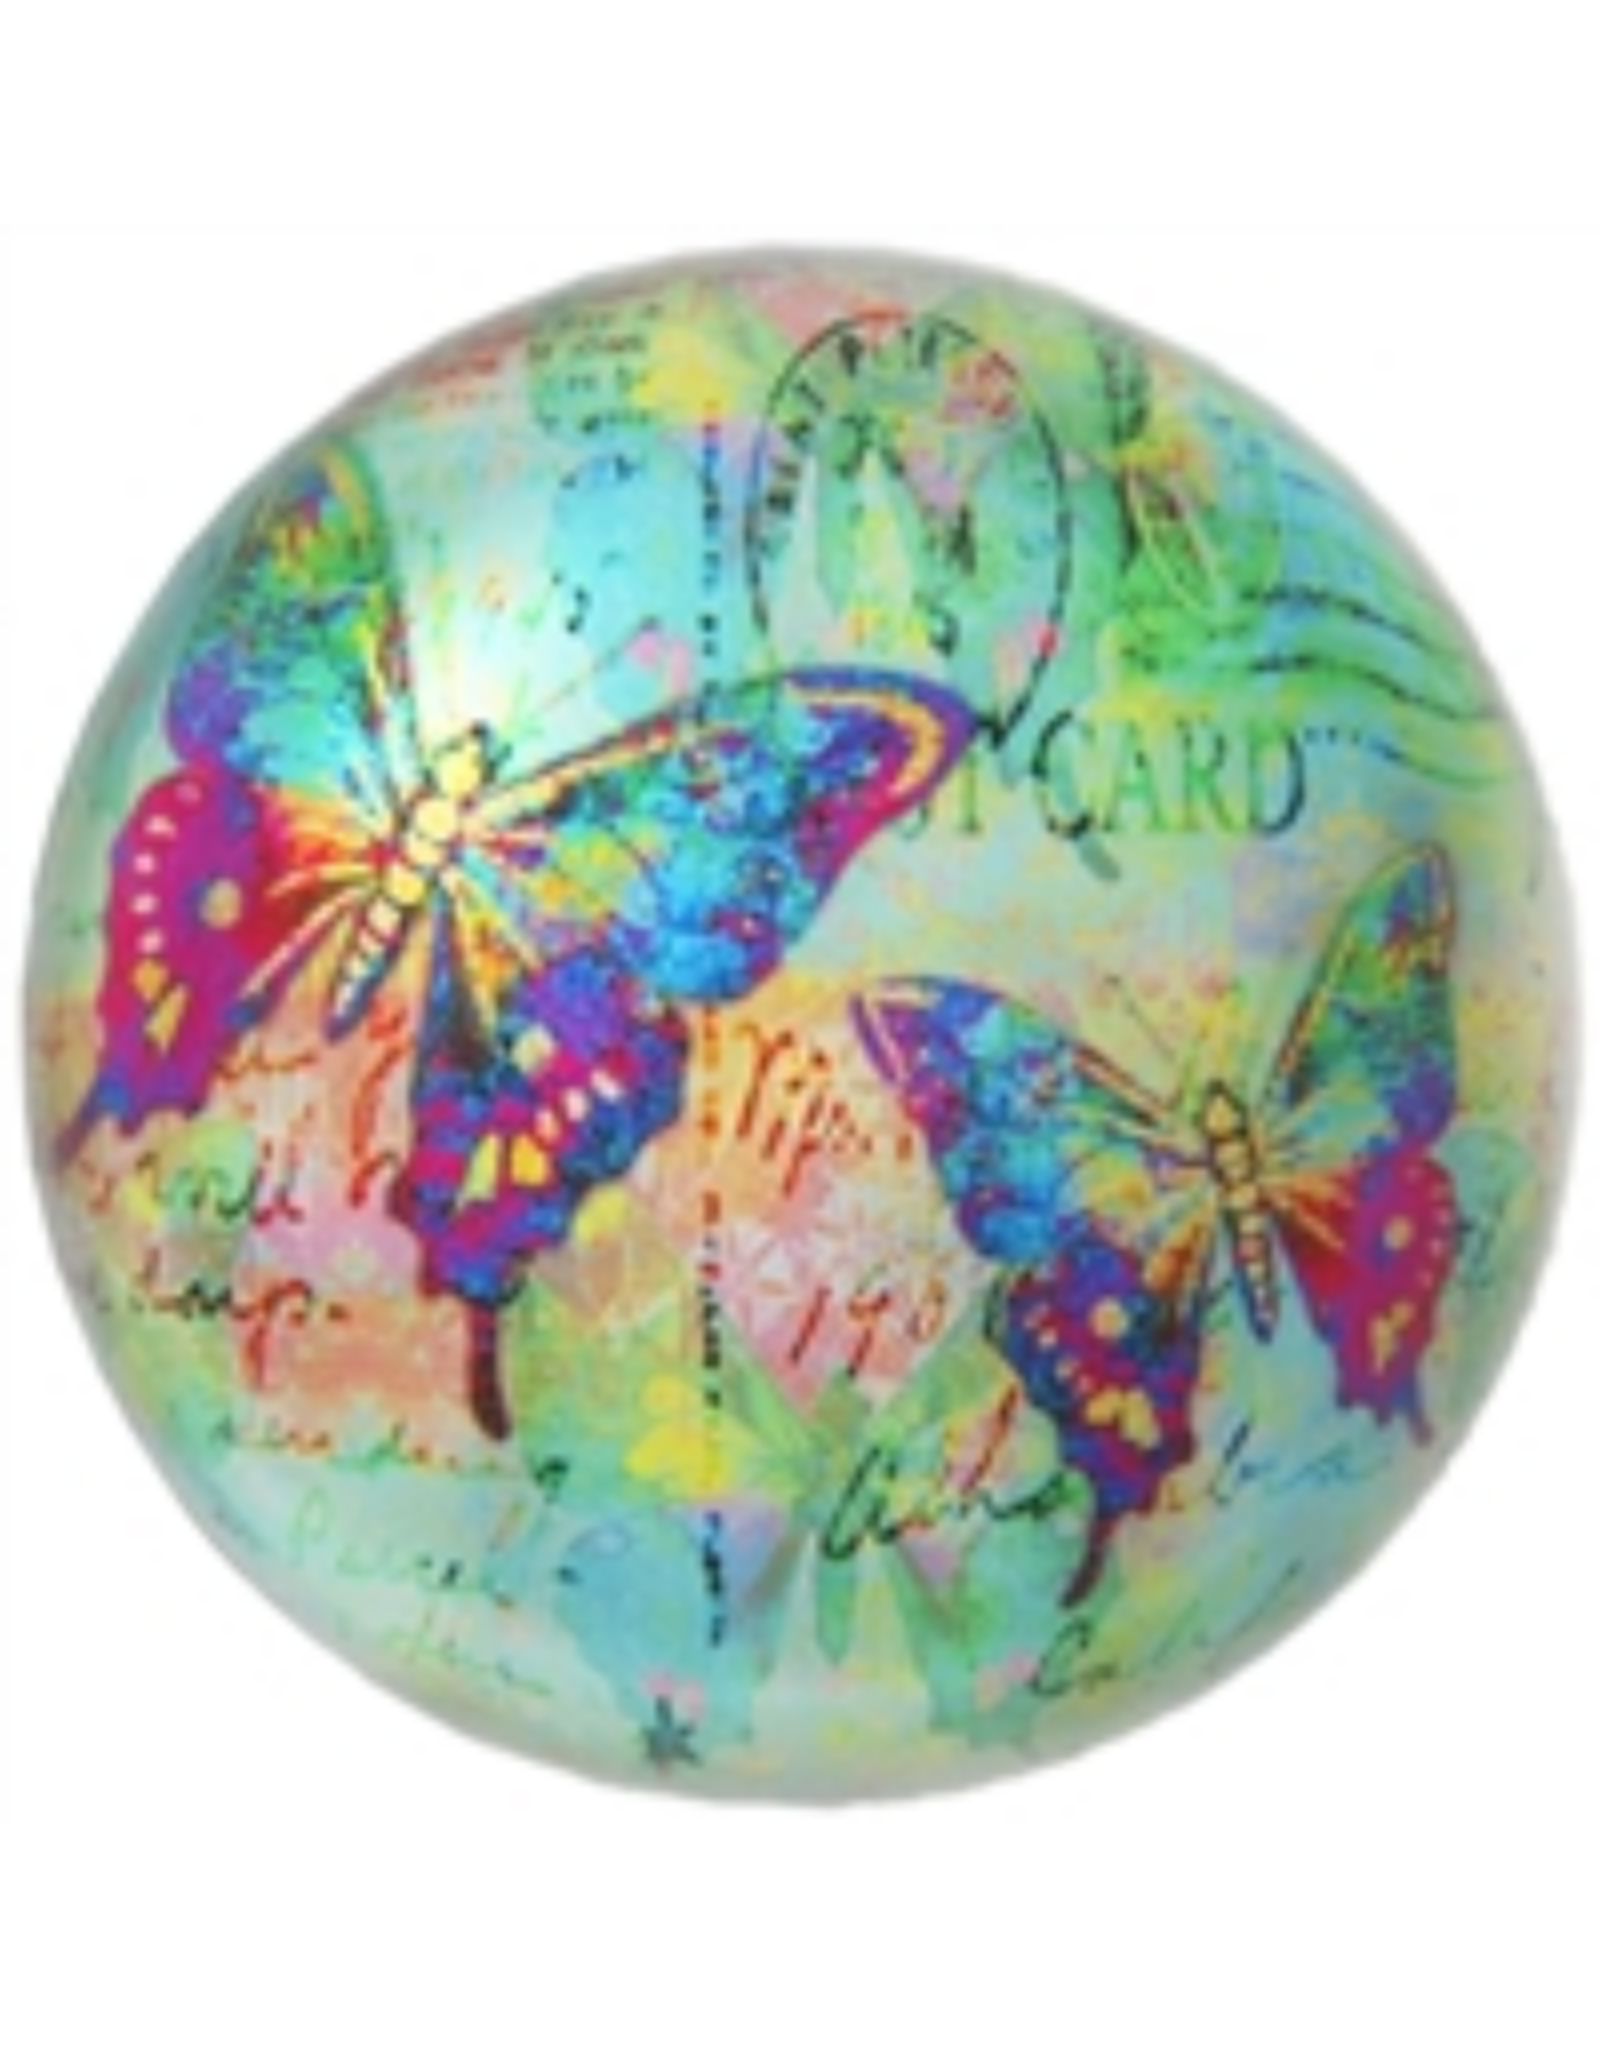 PAPERWEIGHT-GLASS DOME, BUTTERFLY POSTCARD